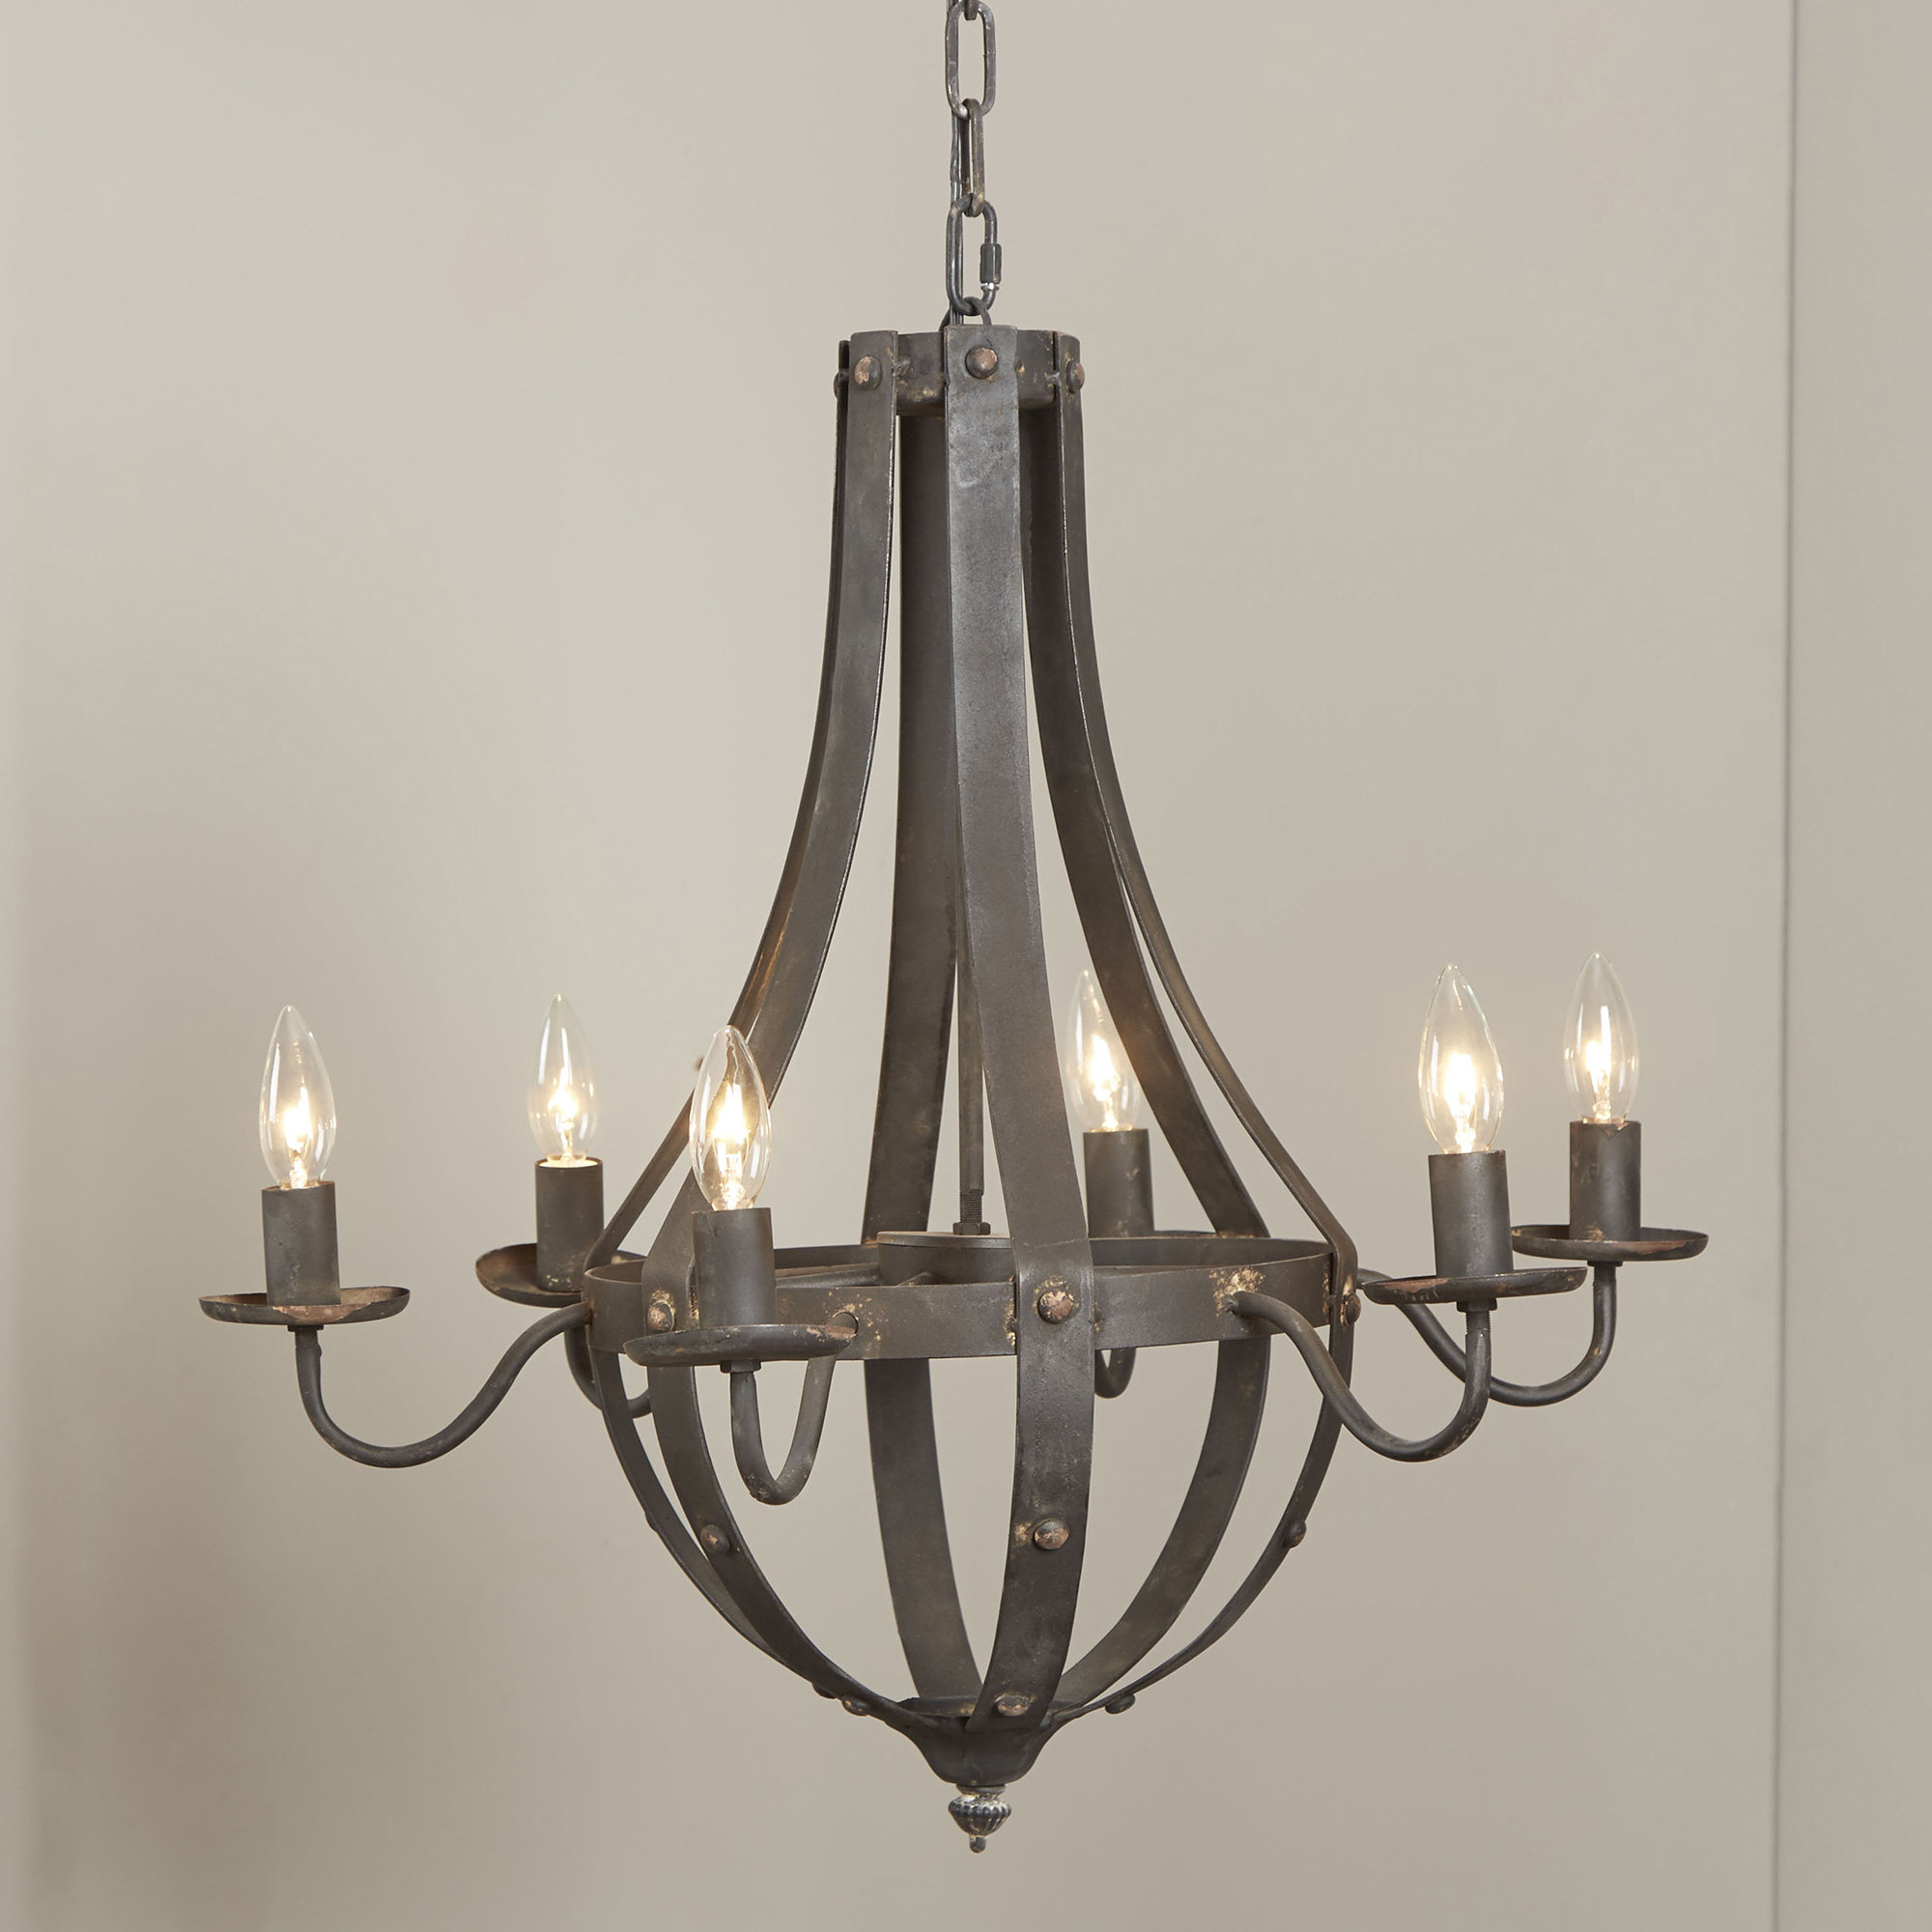 Foulds 6 Light Empire Chandelier In Kenna 5 Light Empire Chandeliers (View 14 of 30)